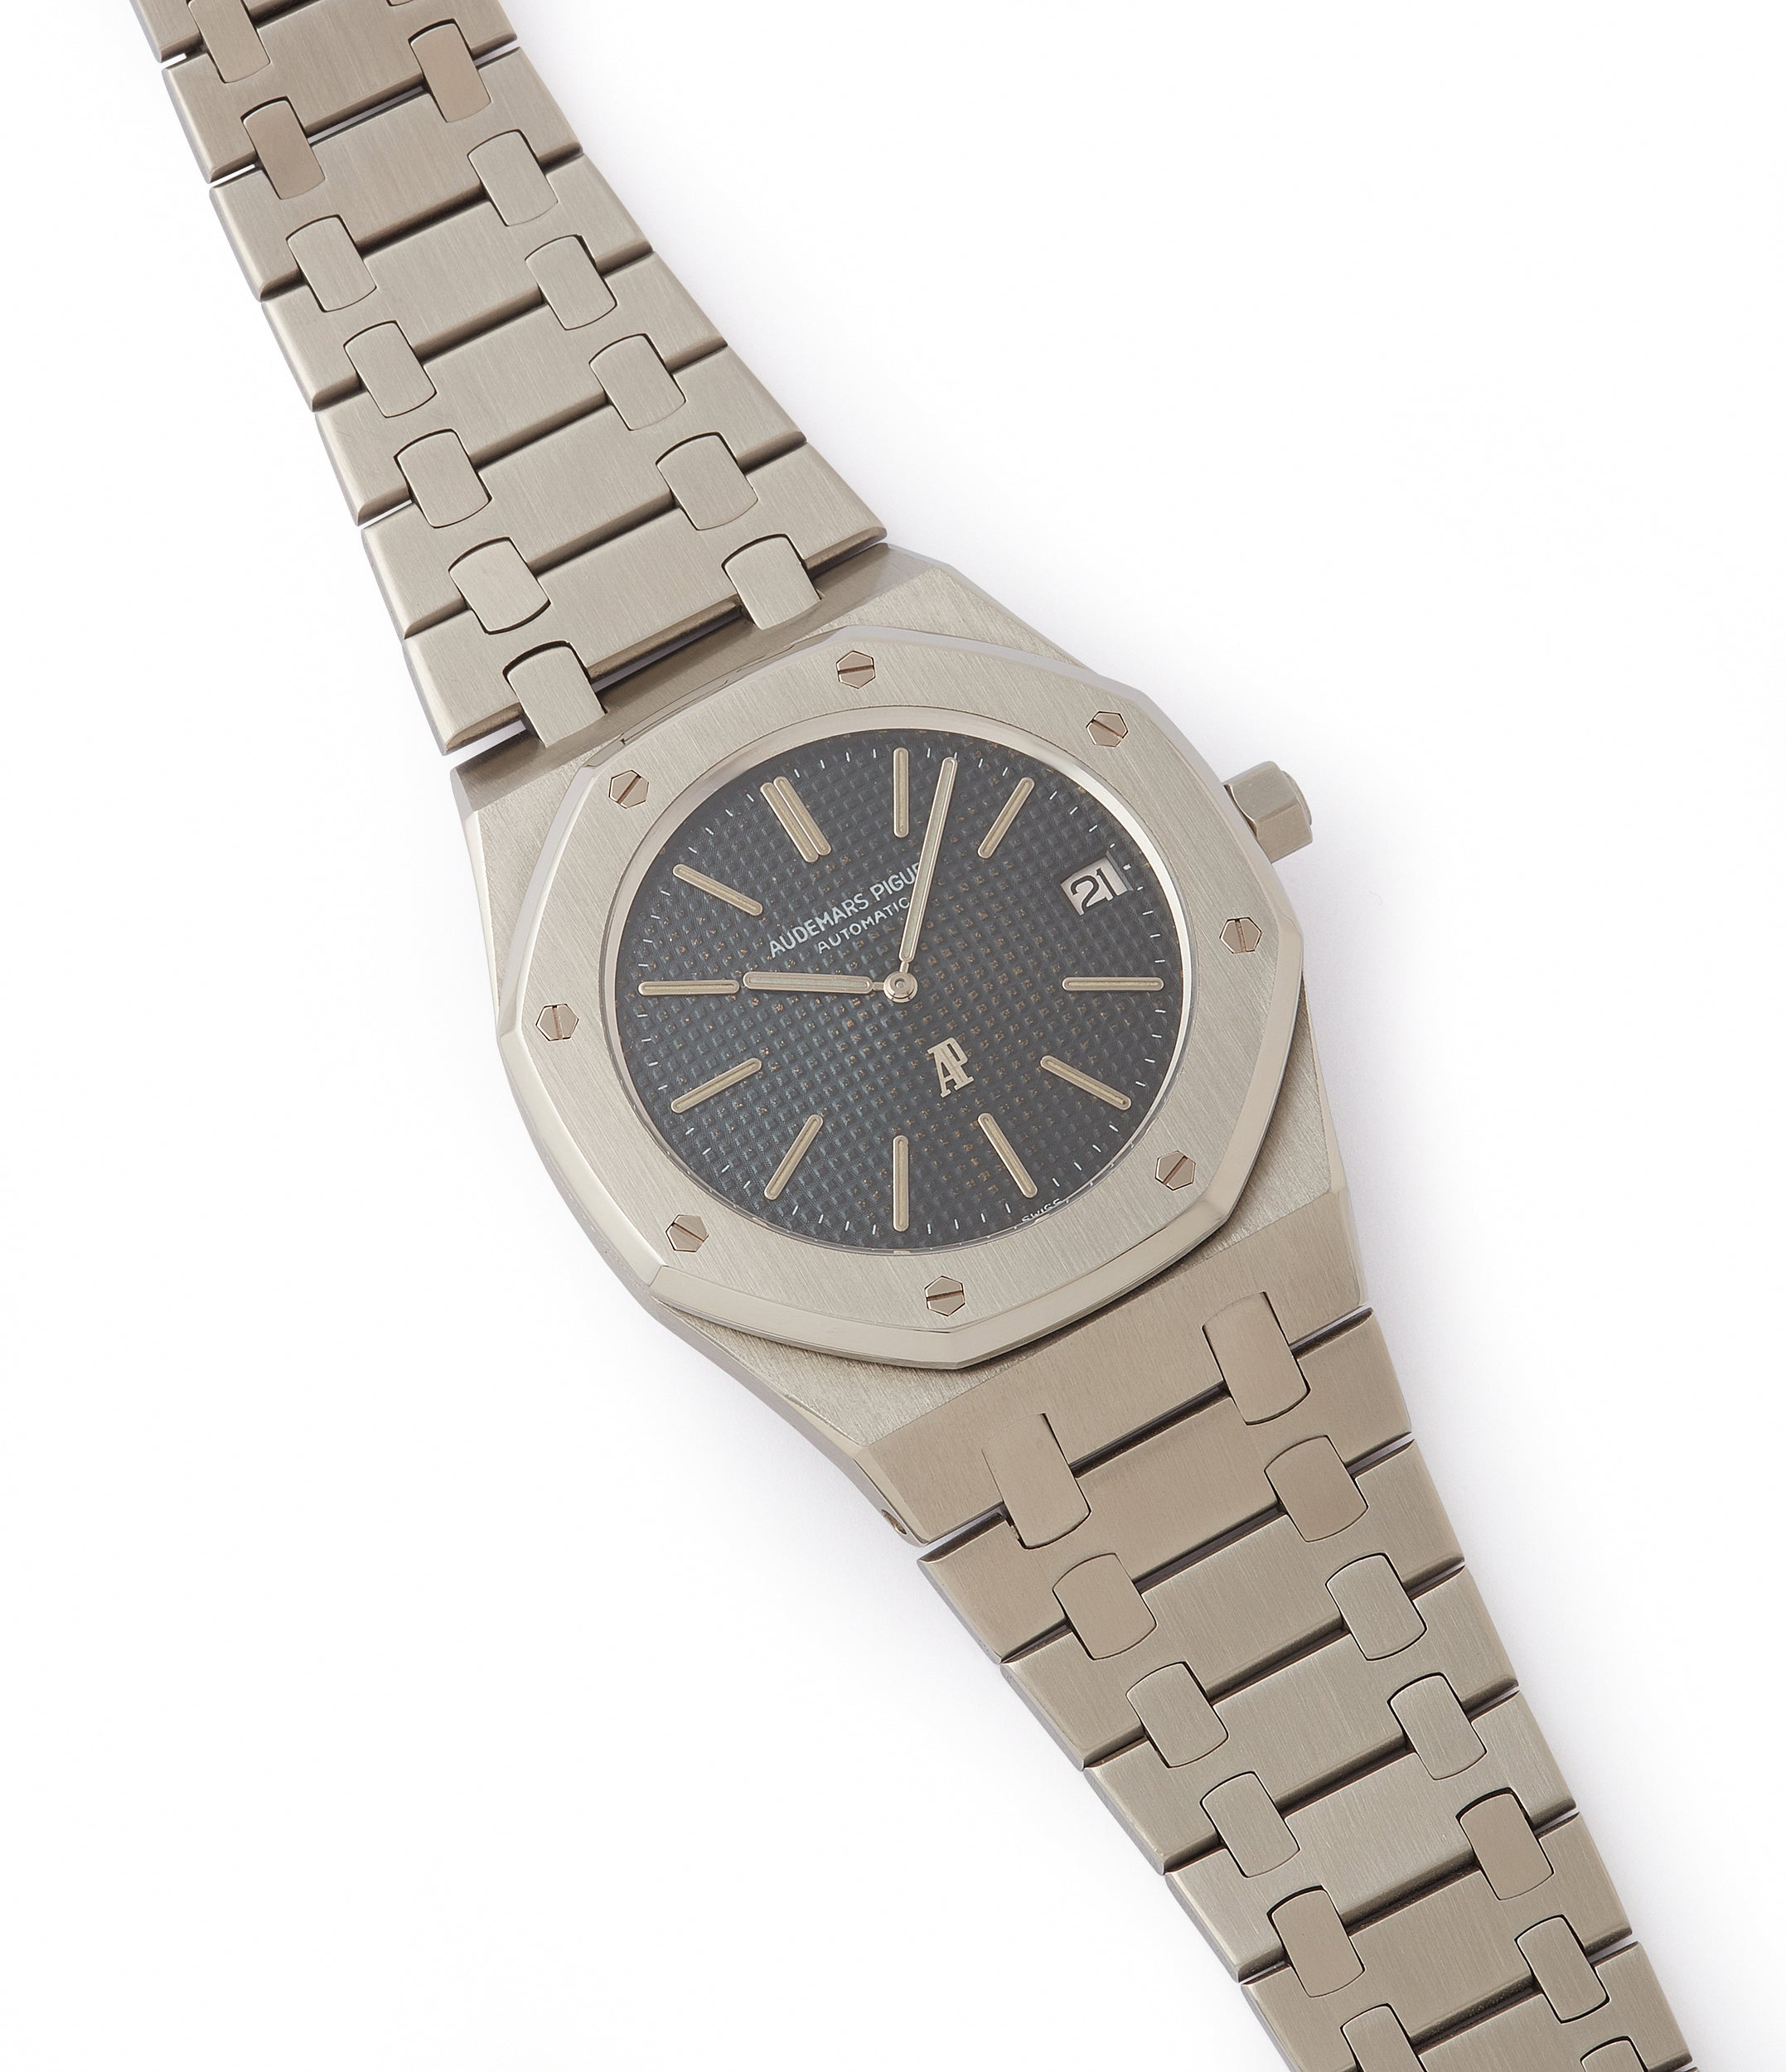 selling vintage Audemars Piguet Royal Oak A-series 5402 steel sport watch for sale online at A Collected Man London UK specialist of rare watches